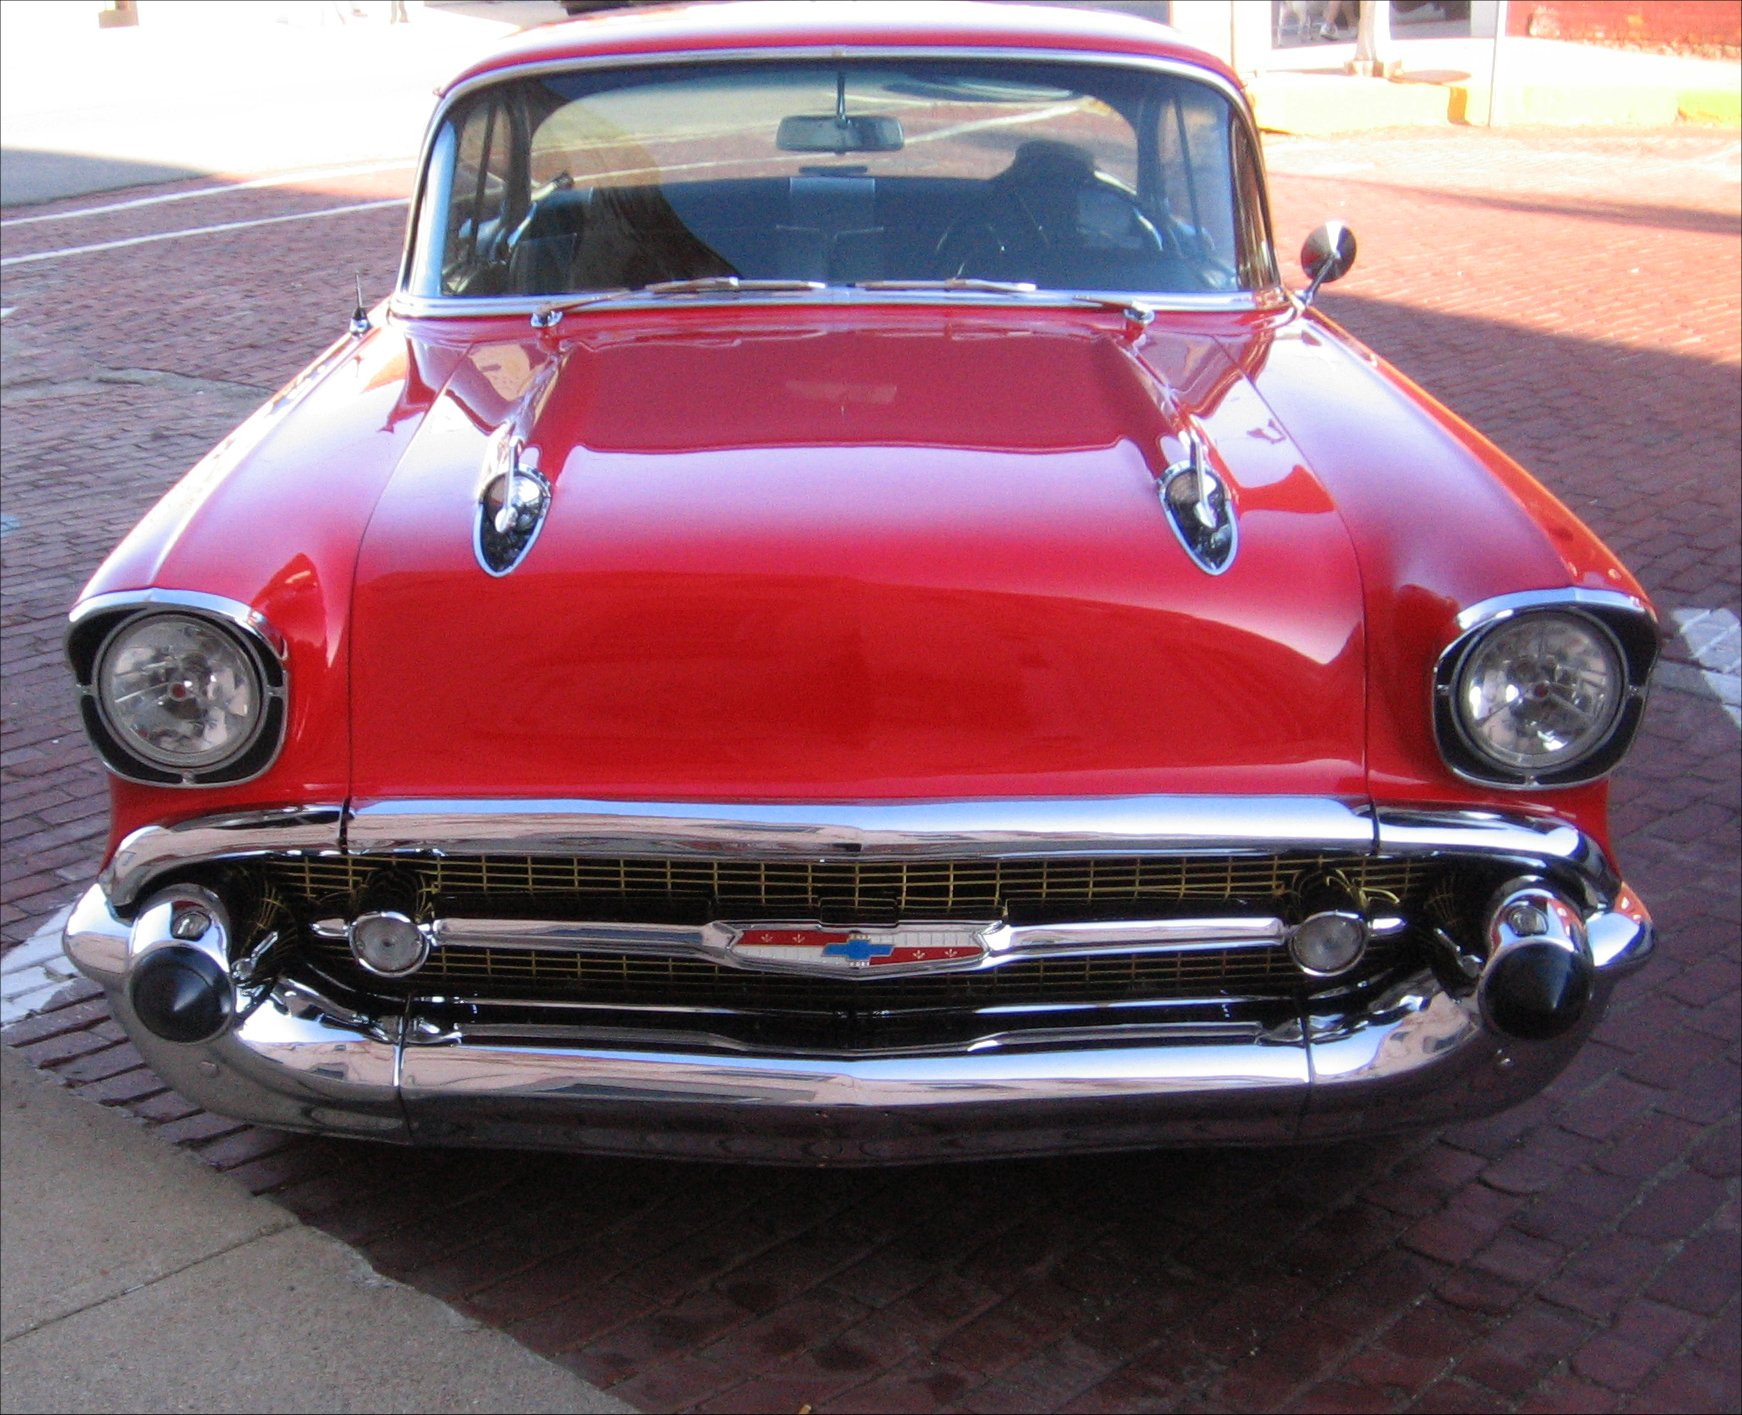 Chevy Bel Air Toy Car For Sale